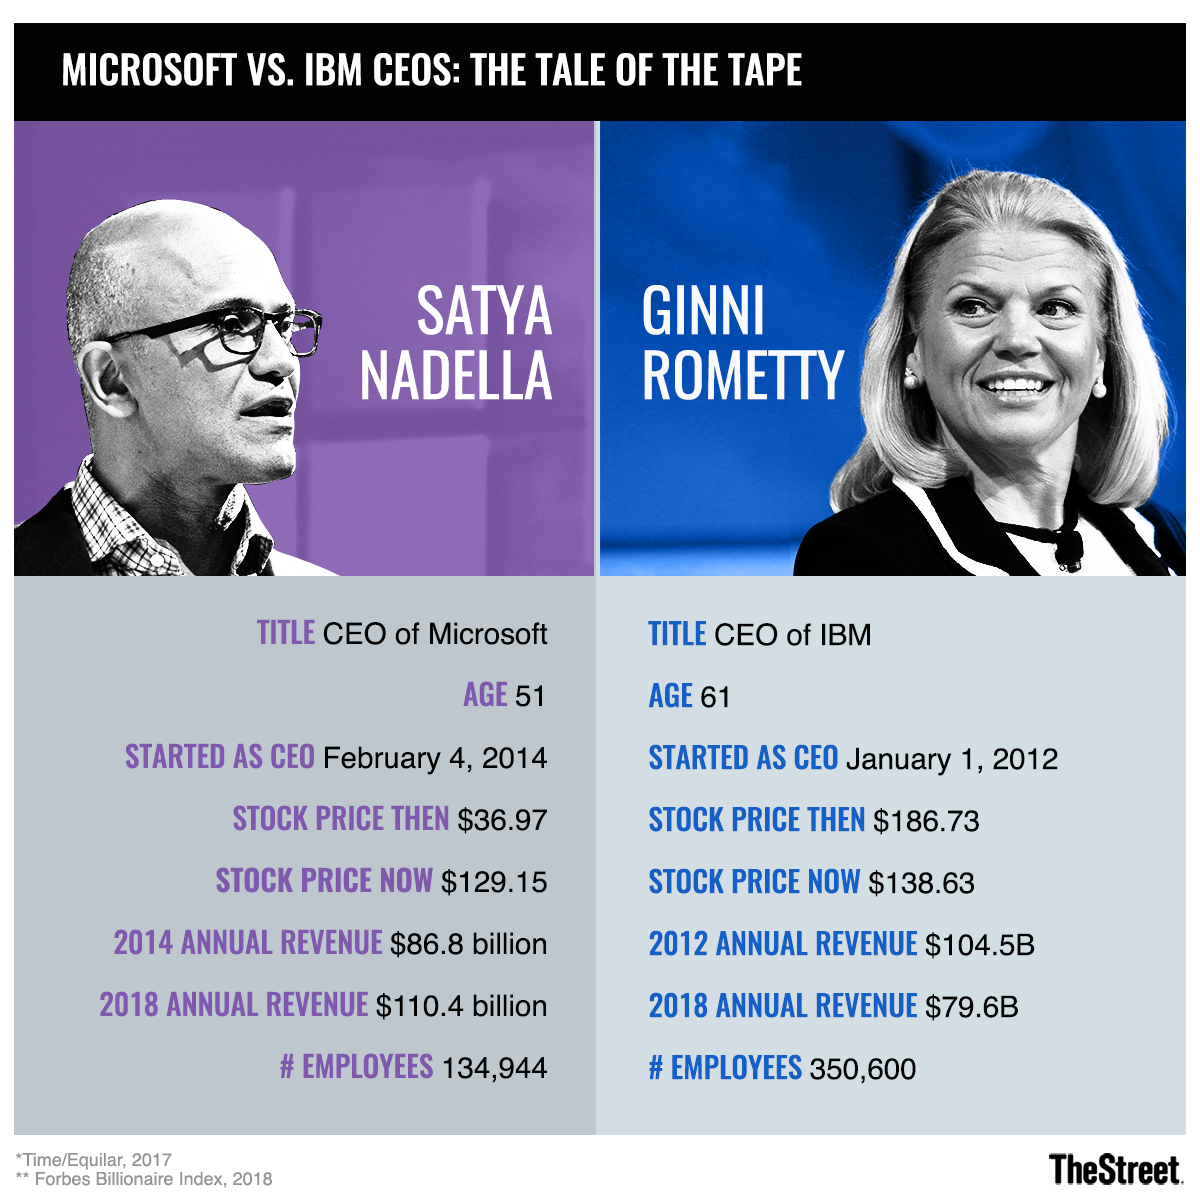 Microsoft Soars to New Heights as IBM Goes Sideways: A Tale